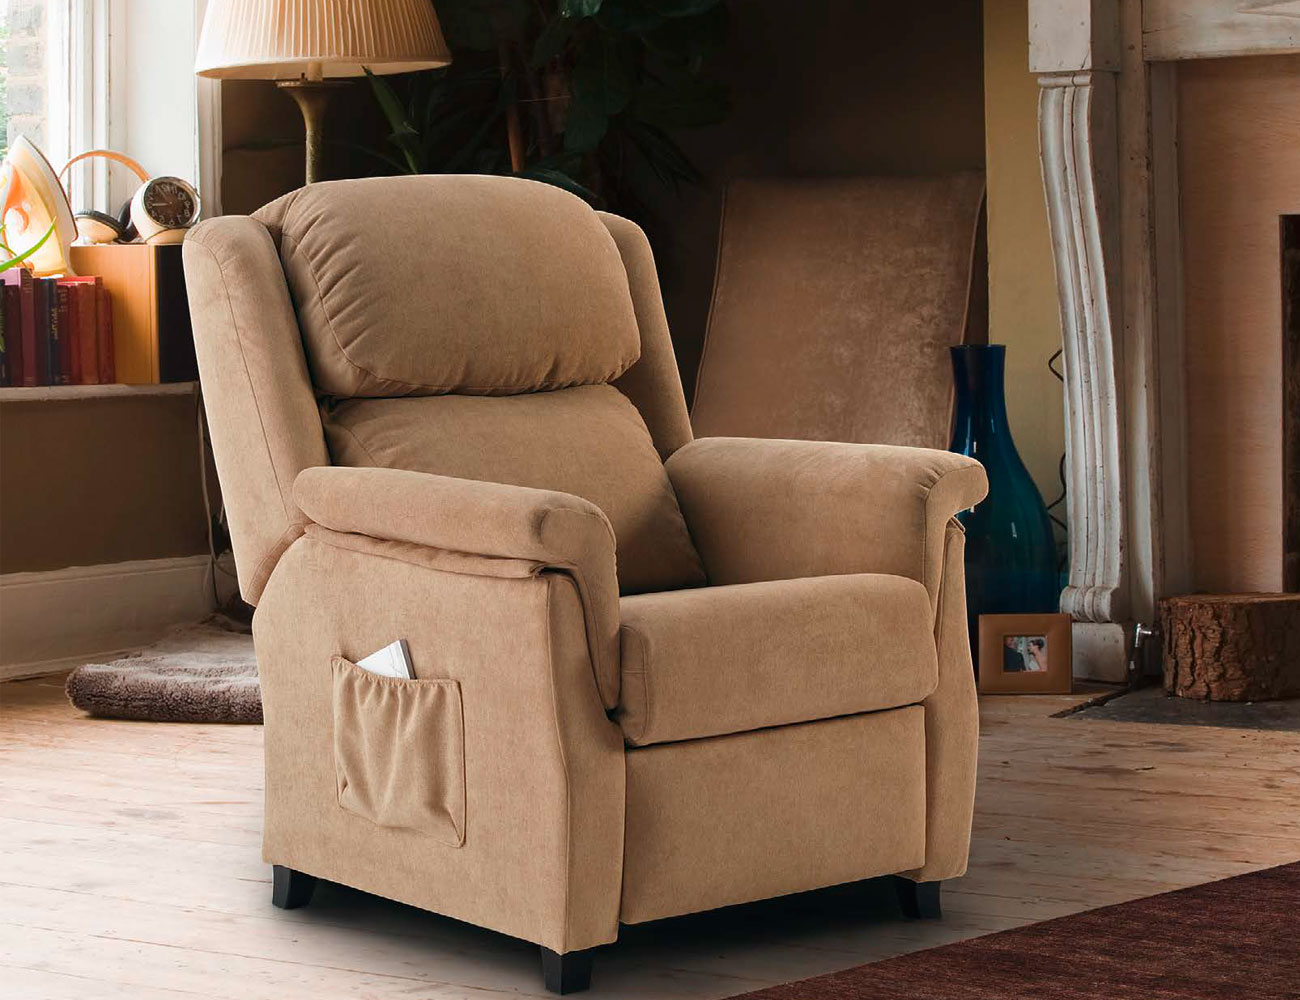 Sillon relax manual bianca 17